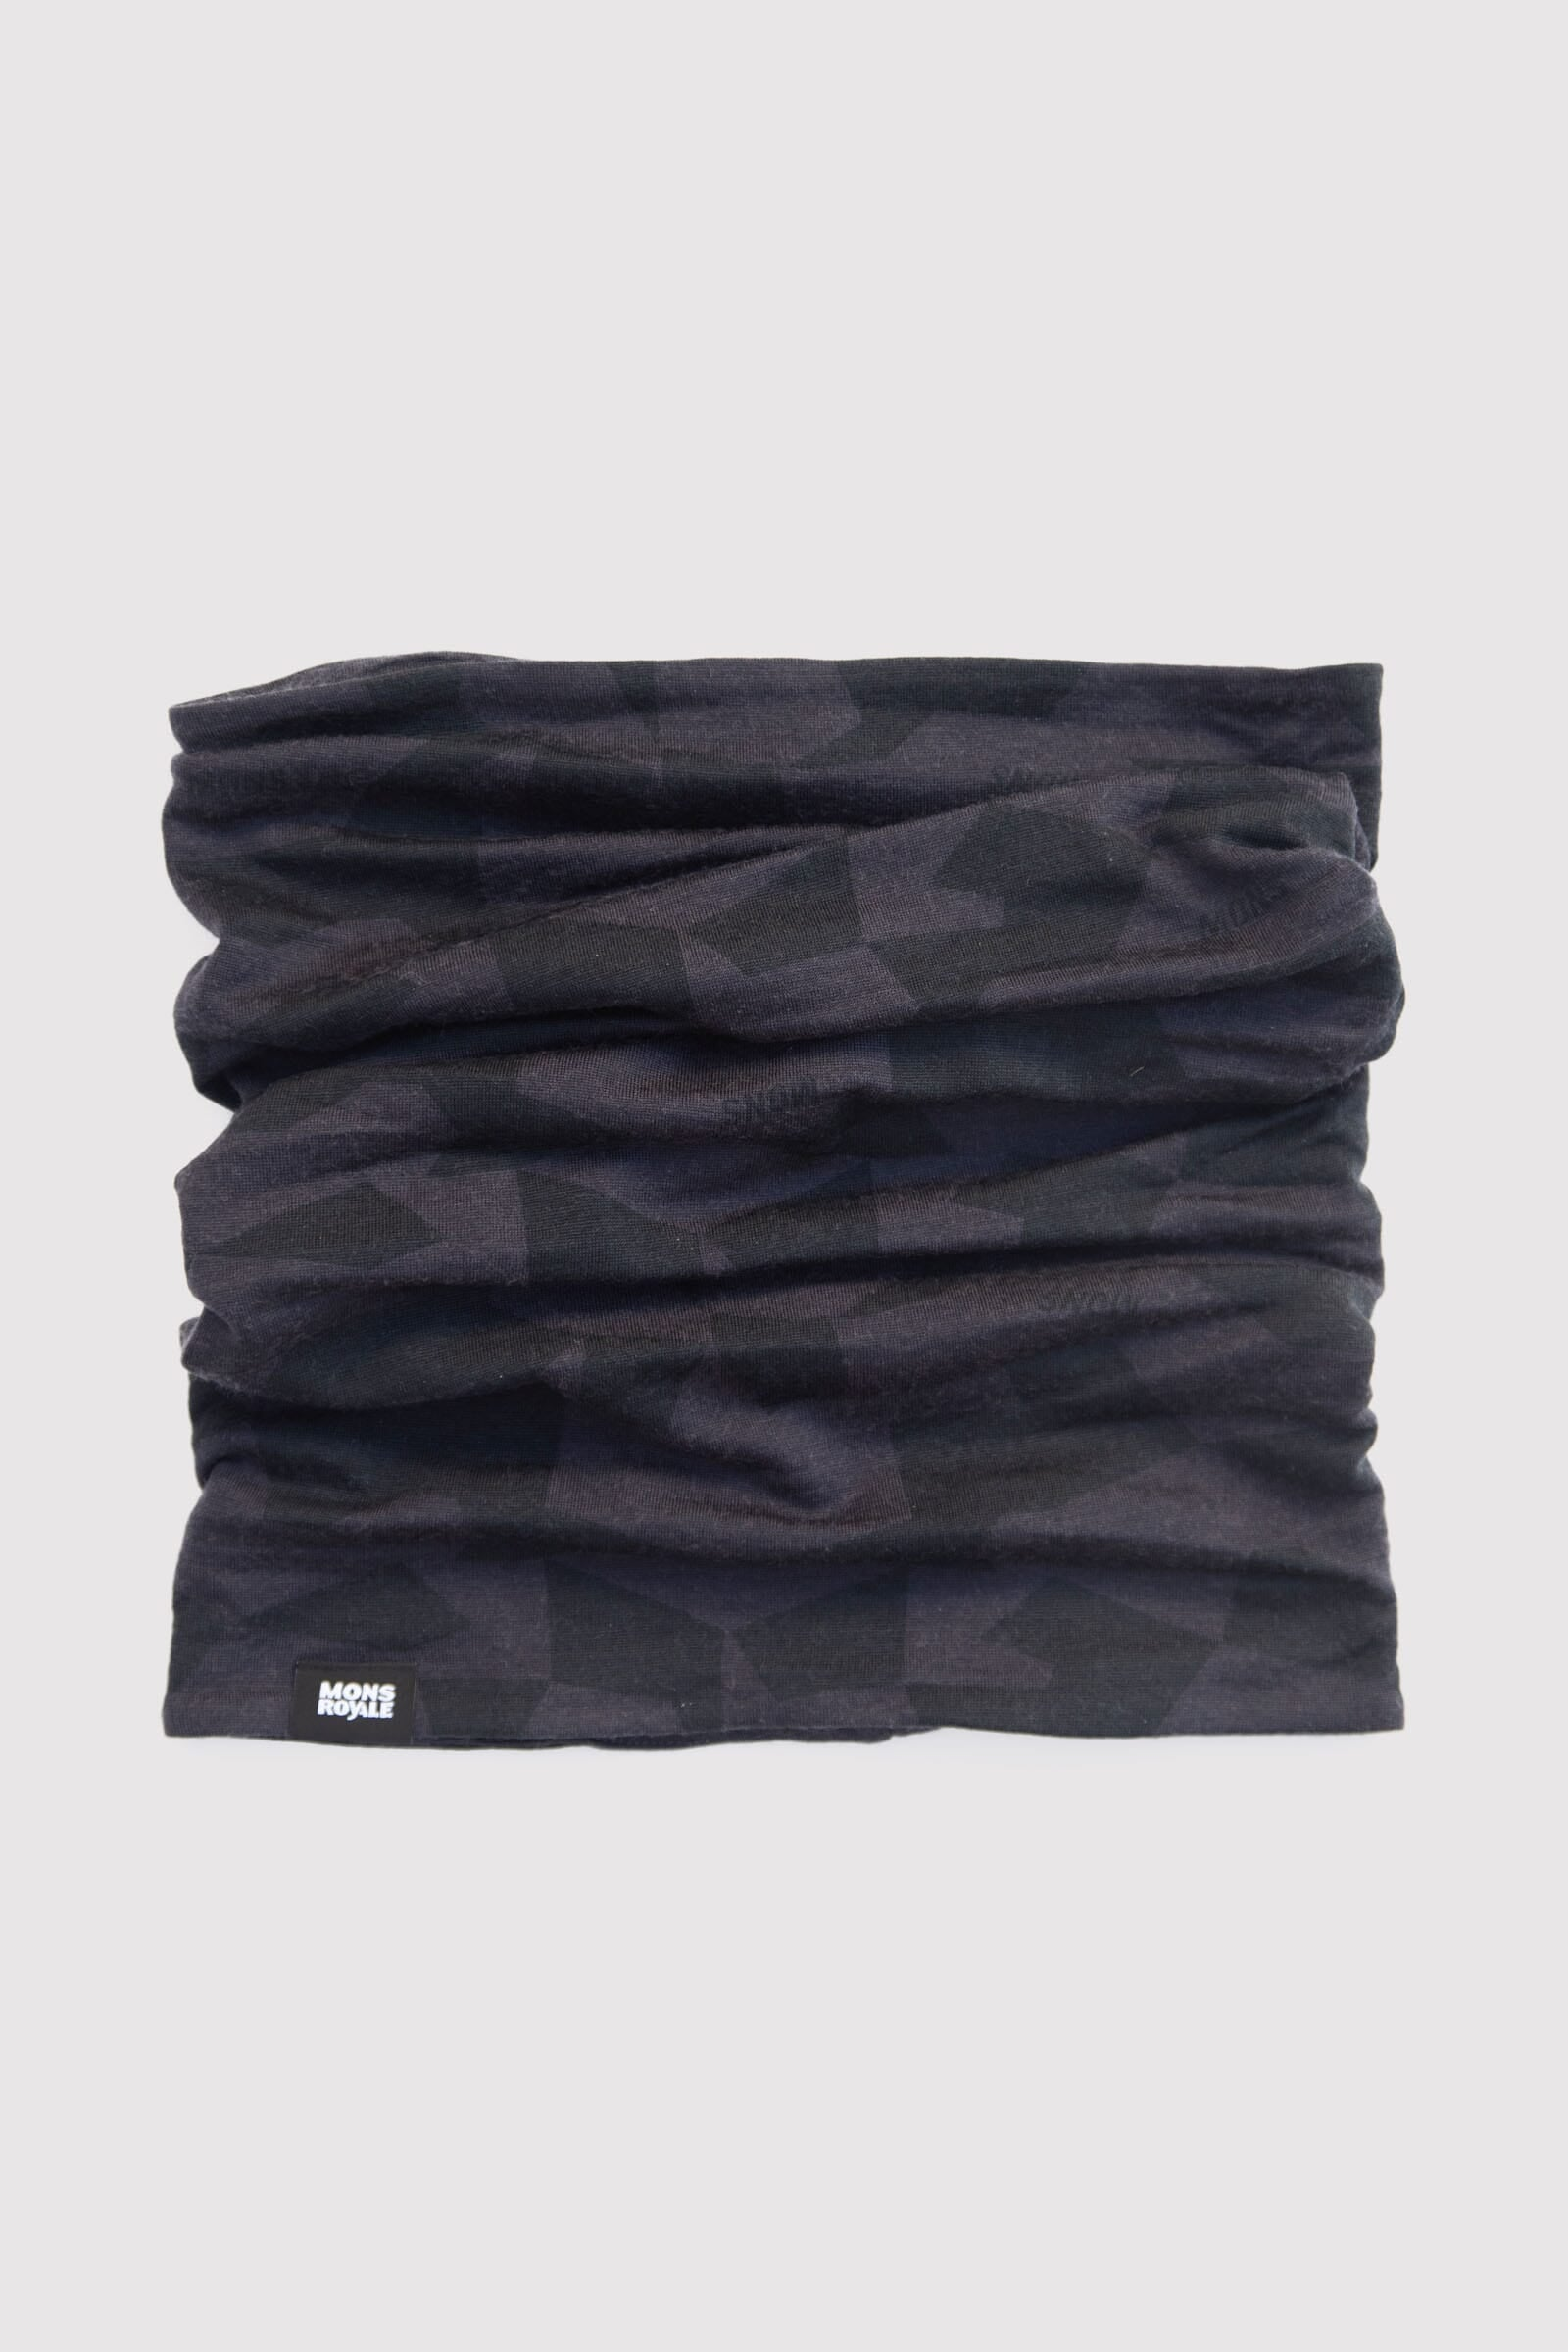 Double Up Reversible Neckwarmer - 9 Iron Camo